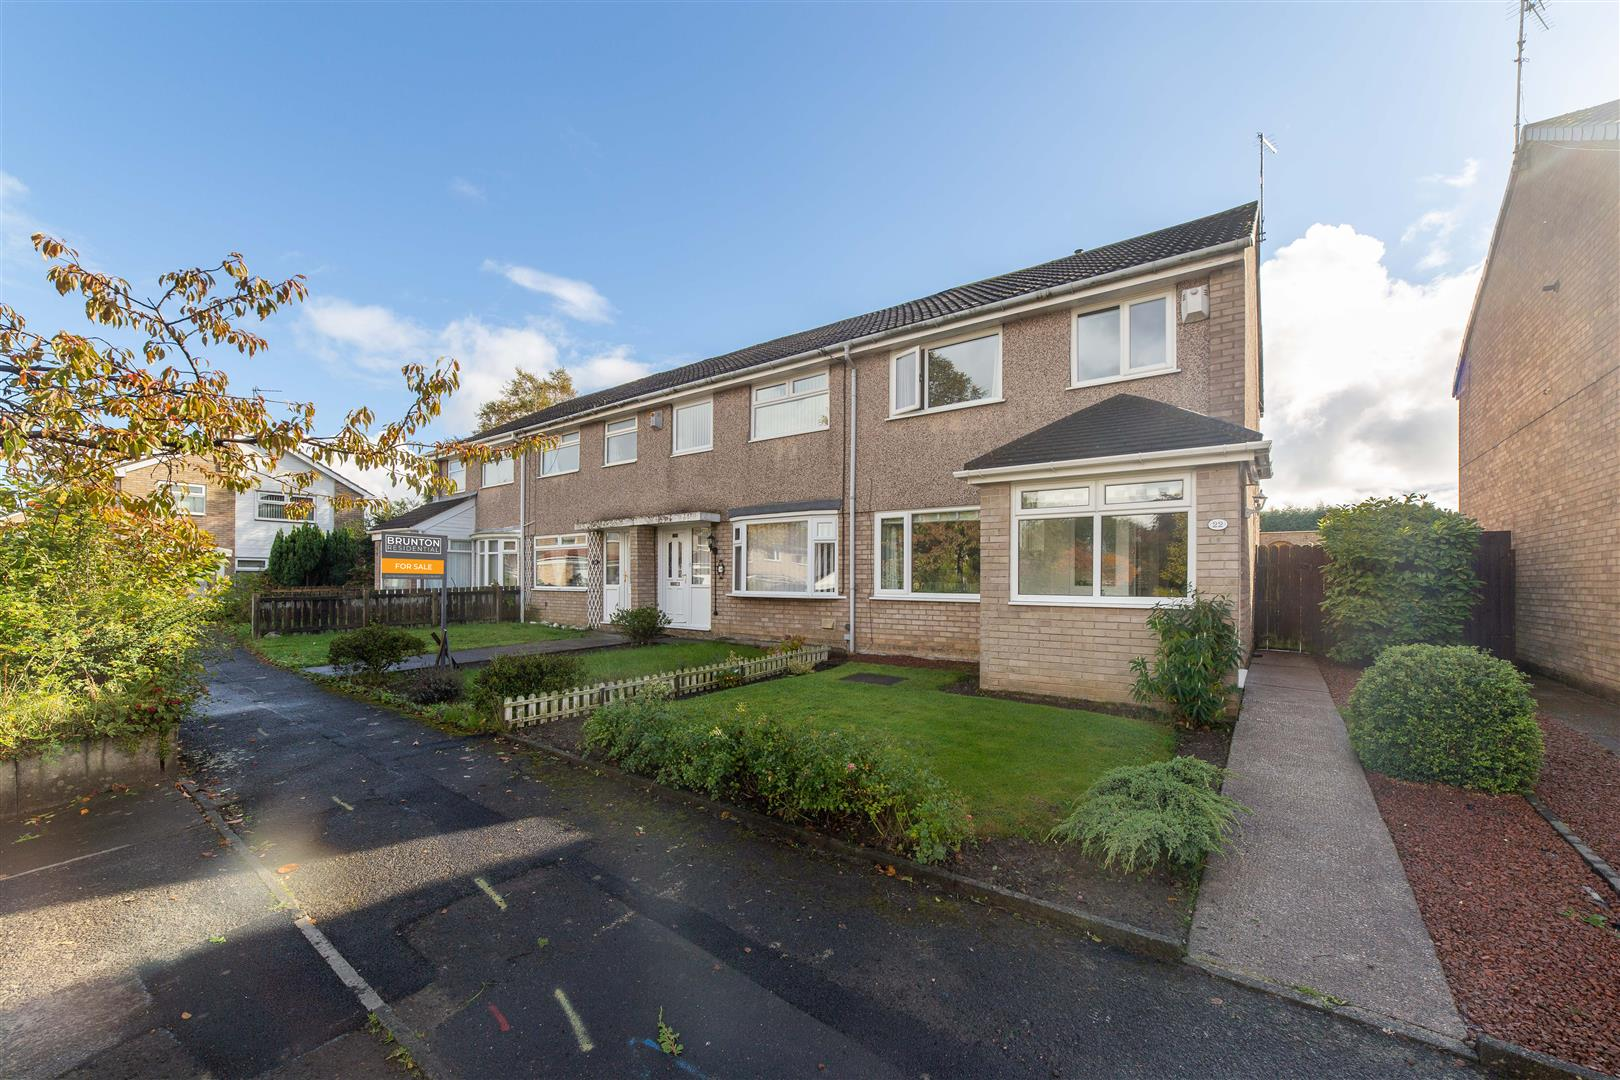 3 bed end of terrace house for sale in Newcastle Upon Tyne, NE3 2XN - Property Image 1